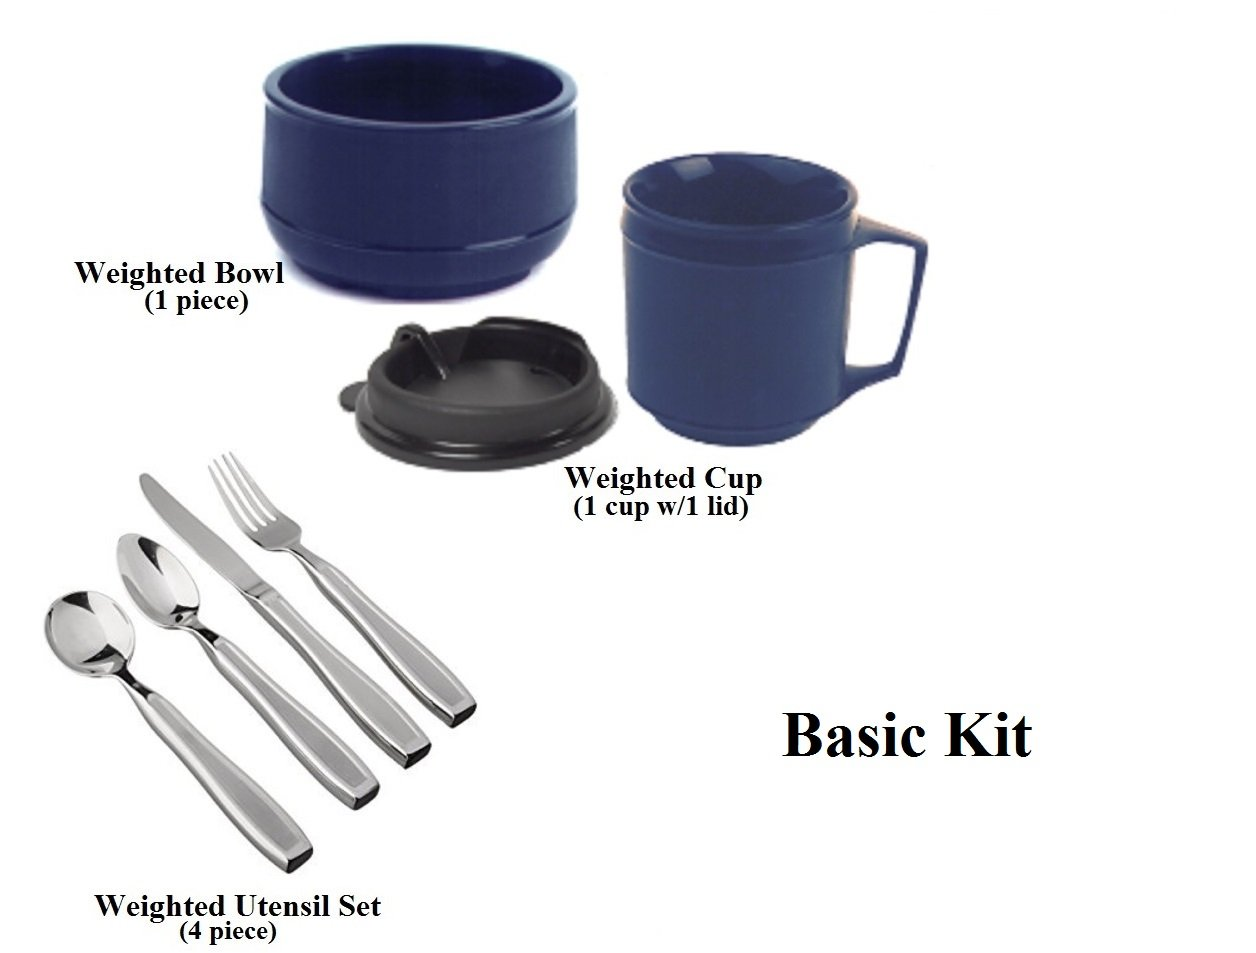 Kinsman Weighted Dining Kit